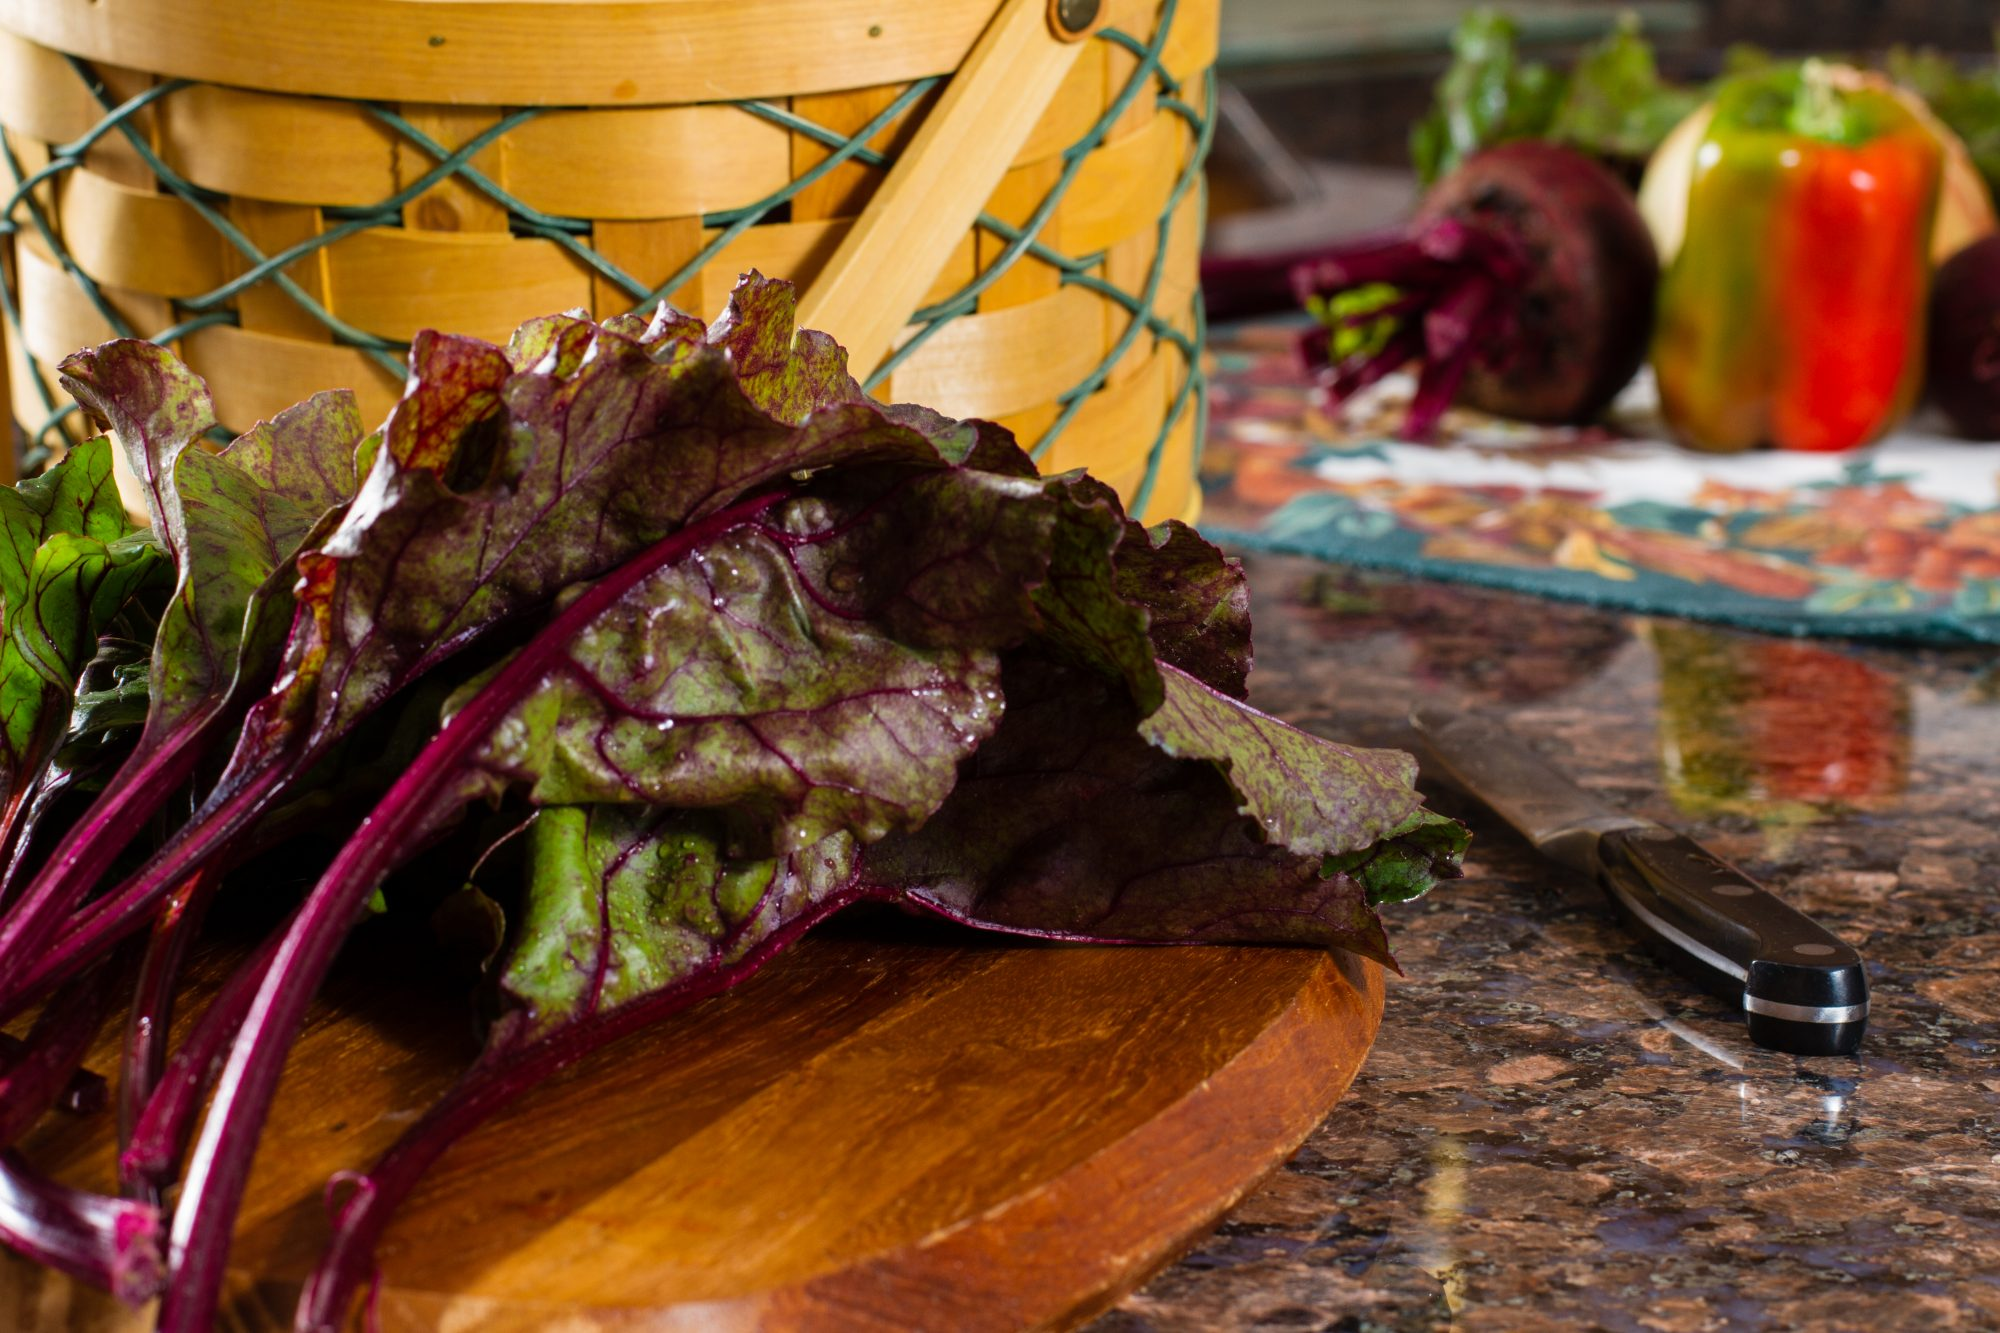 Surprising Foods You Can Eat: Beet Greens